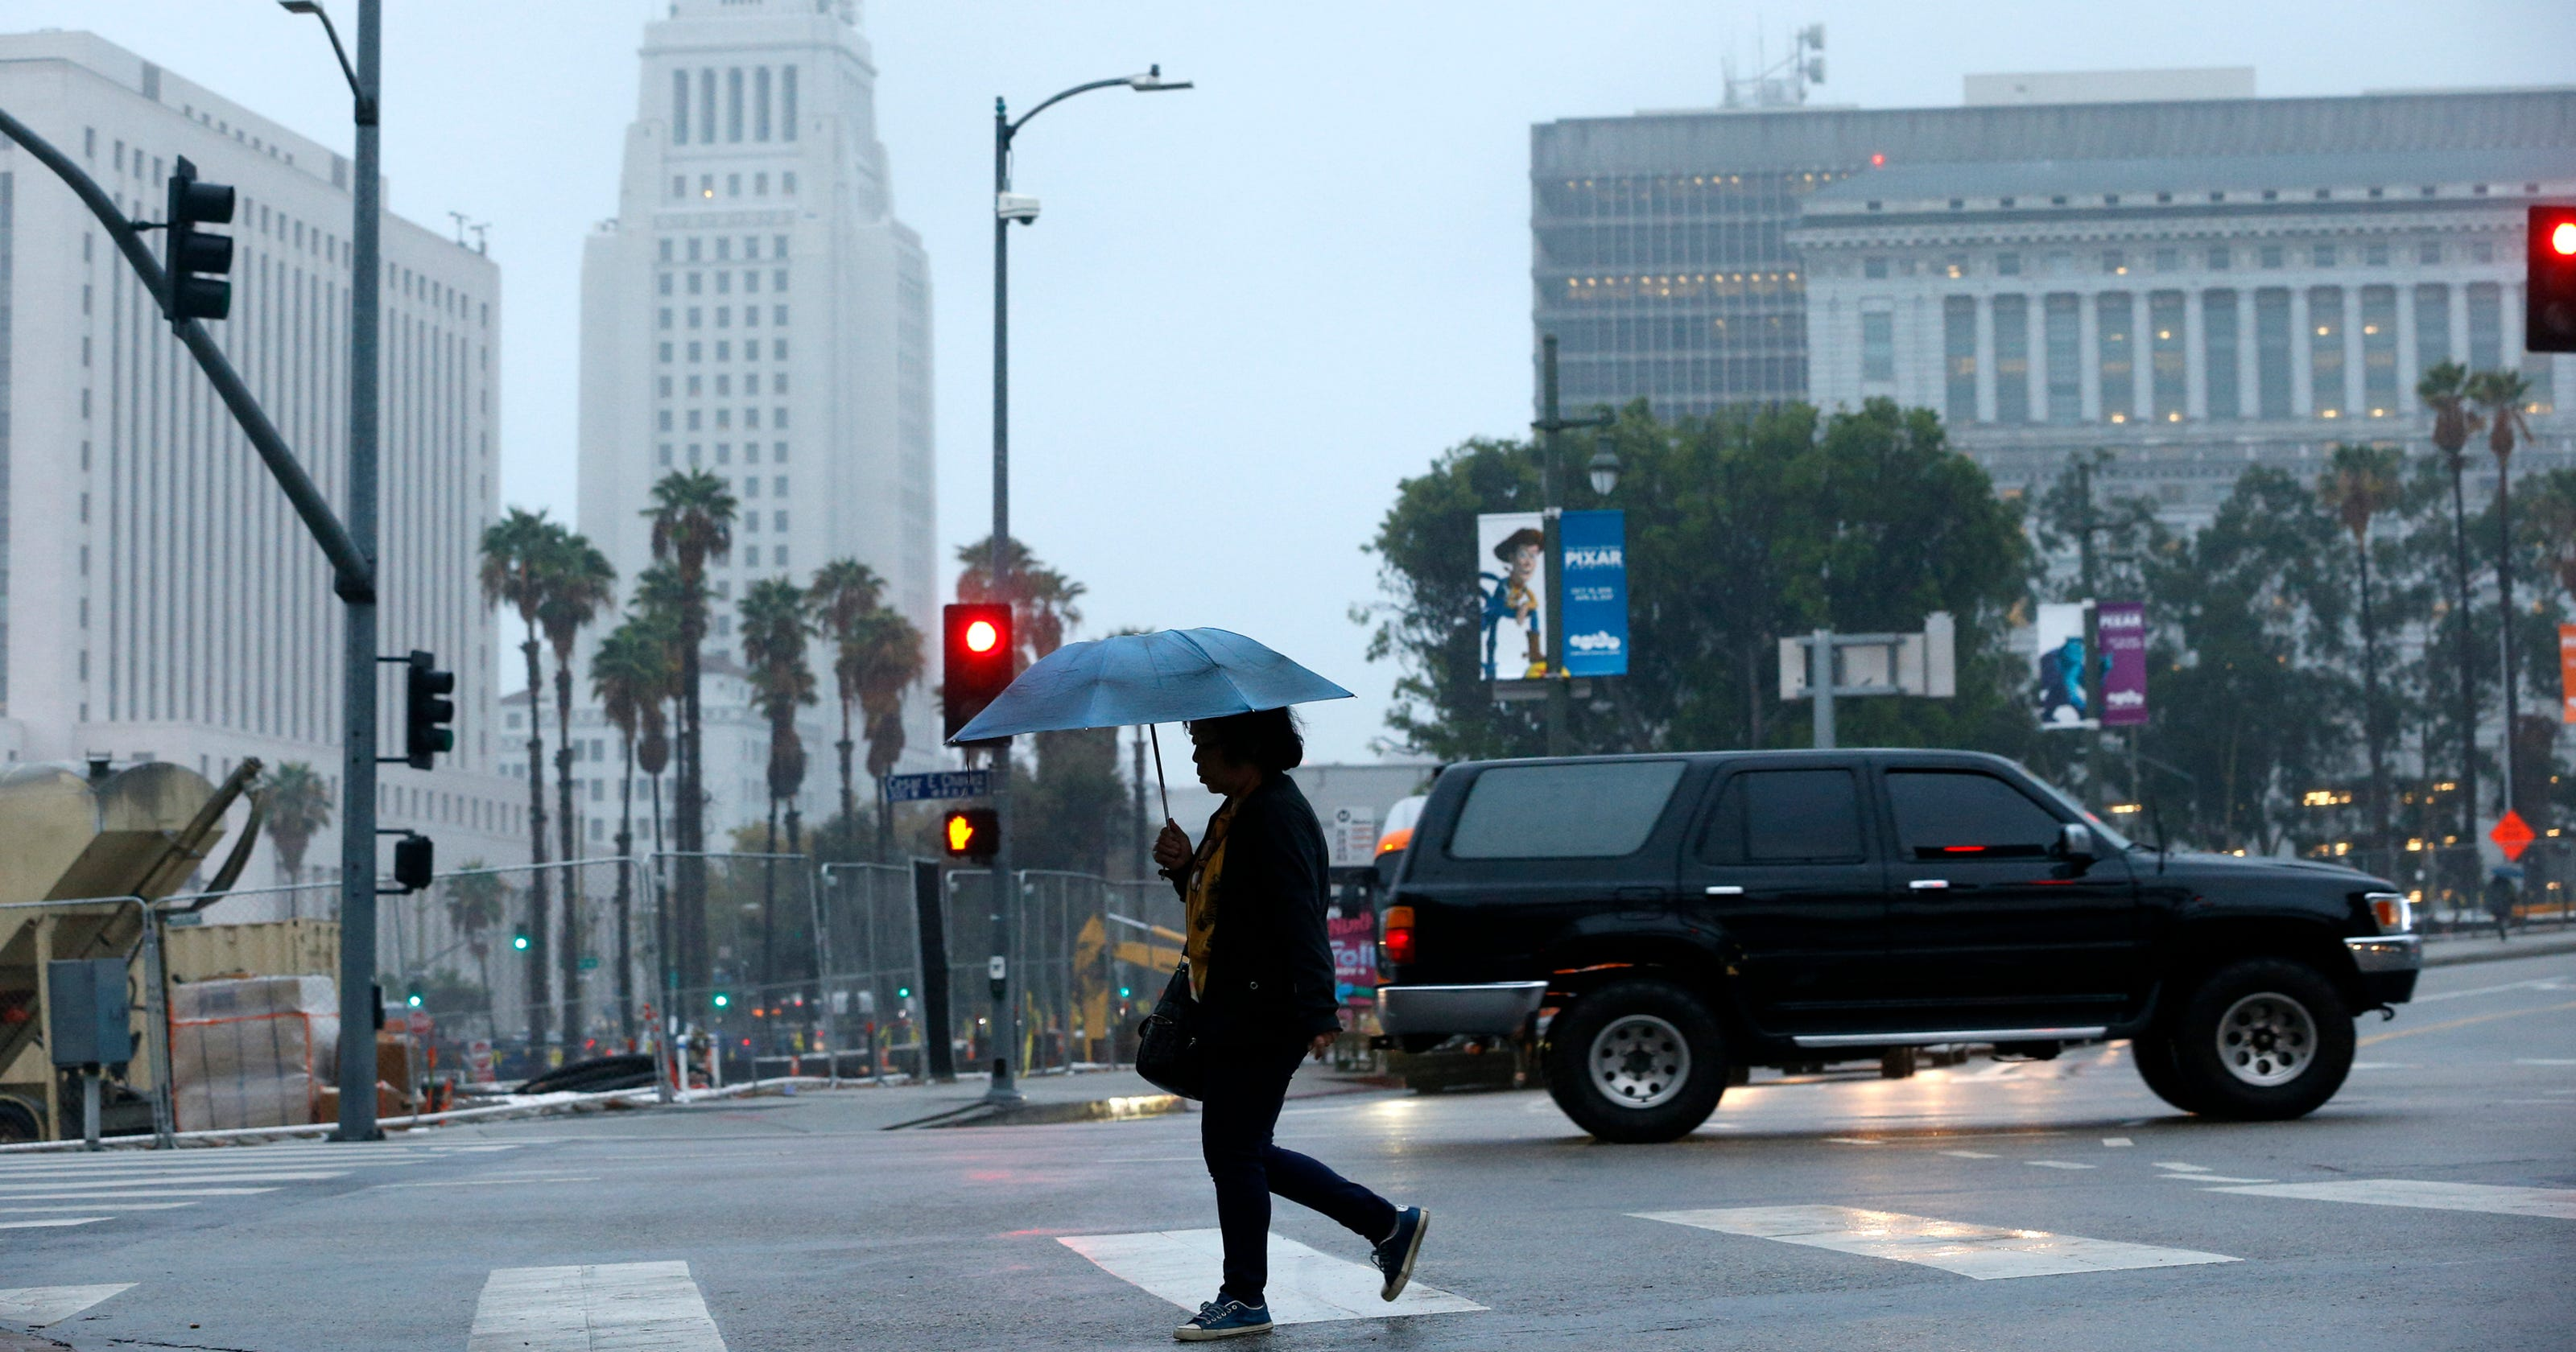 It's raining in Los Angeles and people are losing their minds